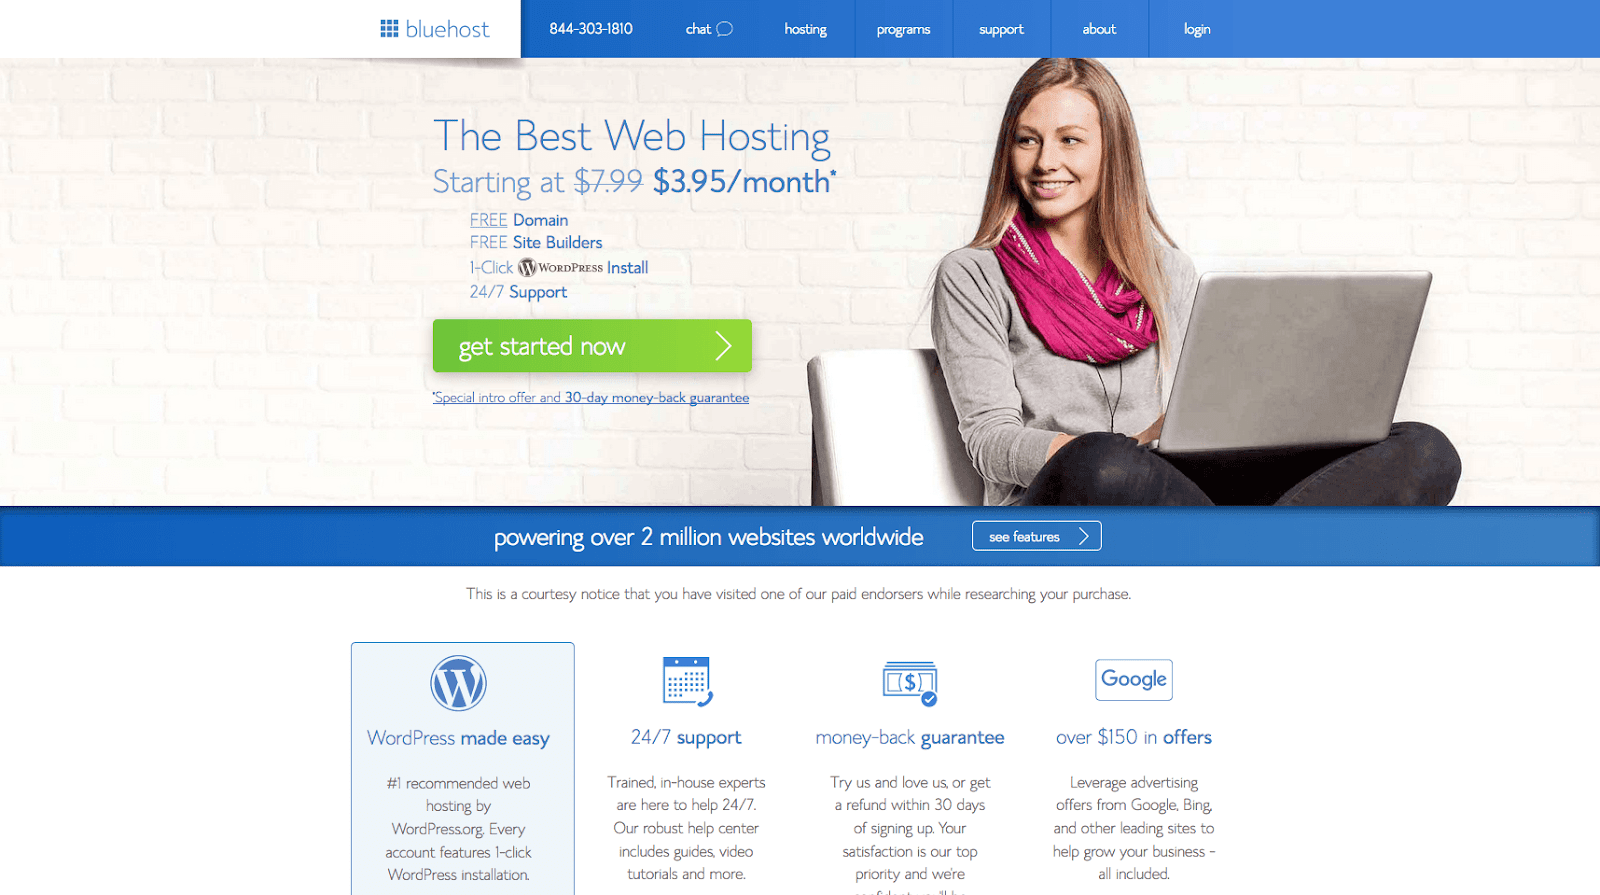 How To Start A Blog On BlueHost?